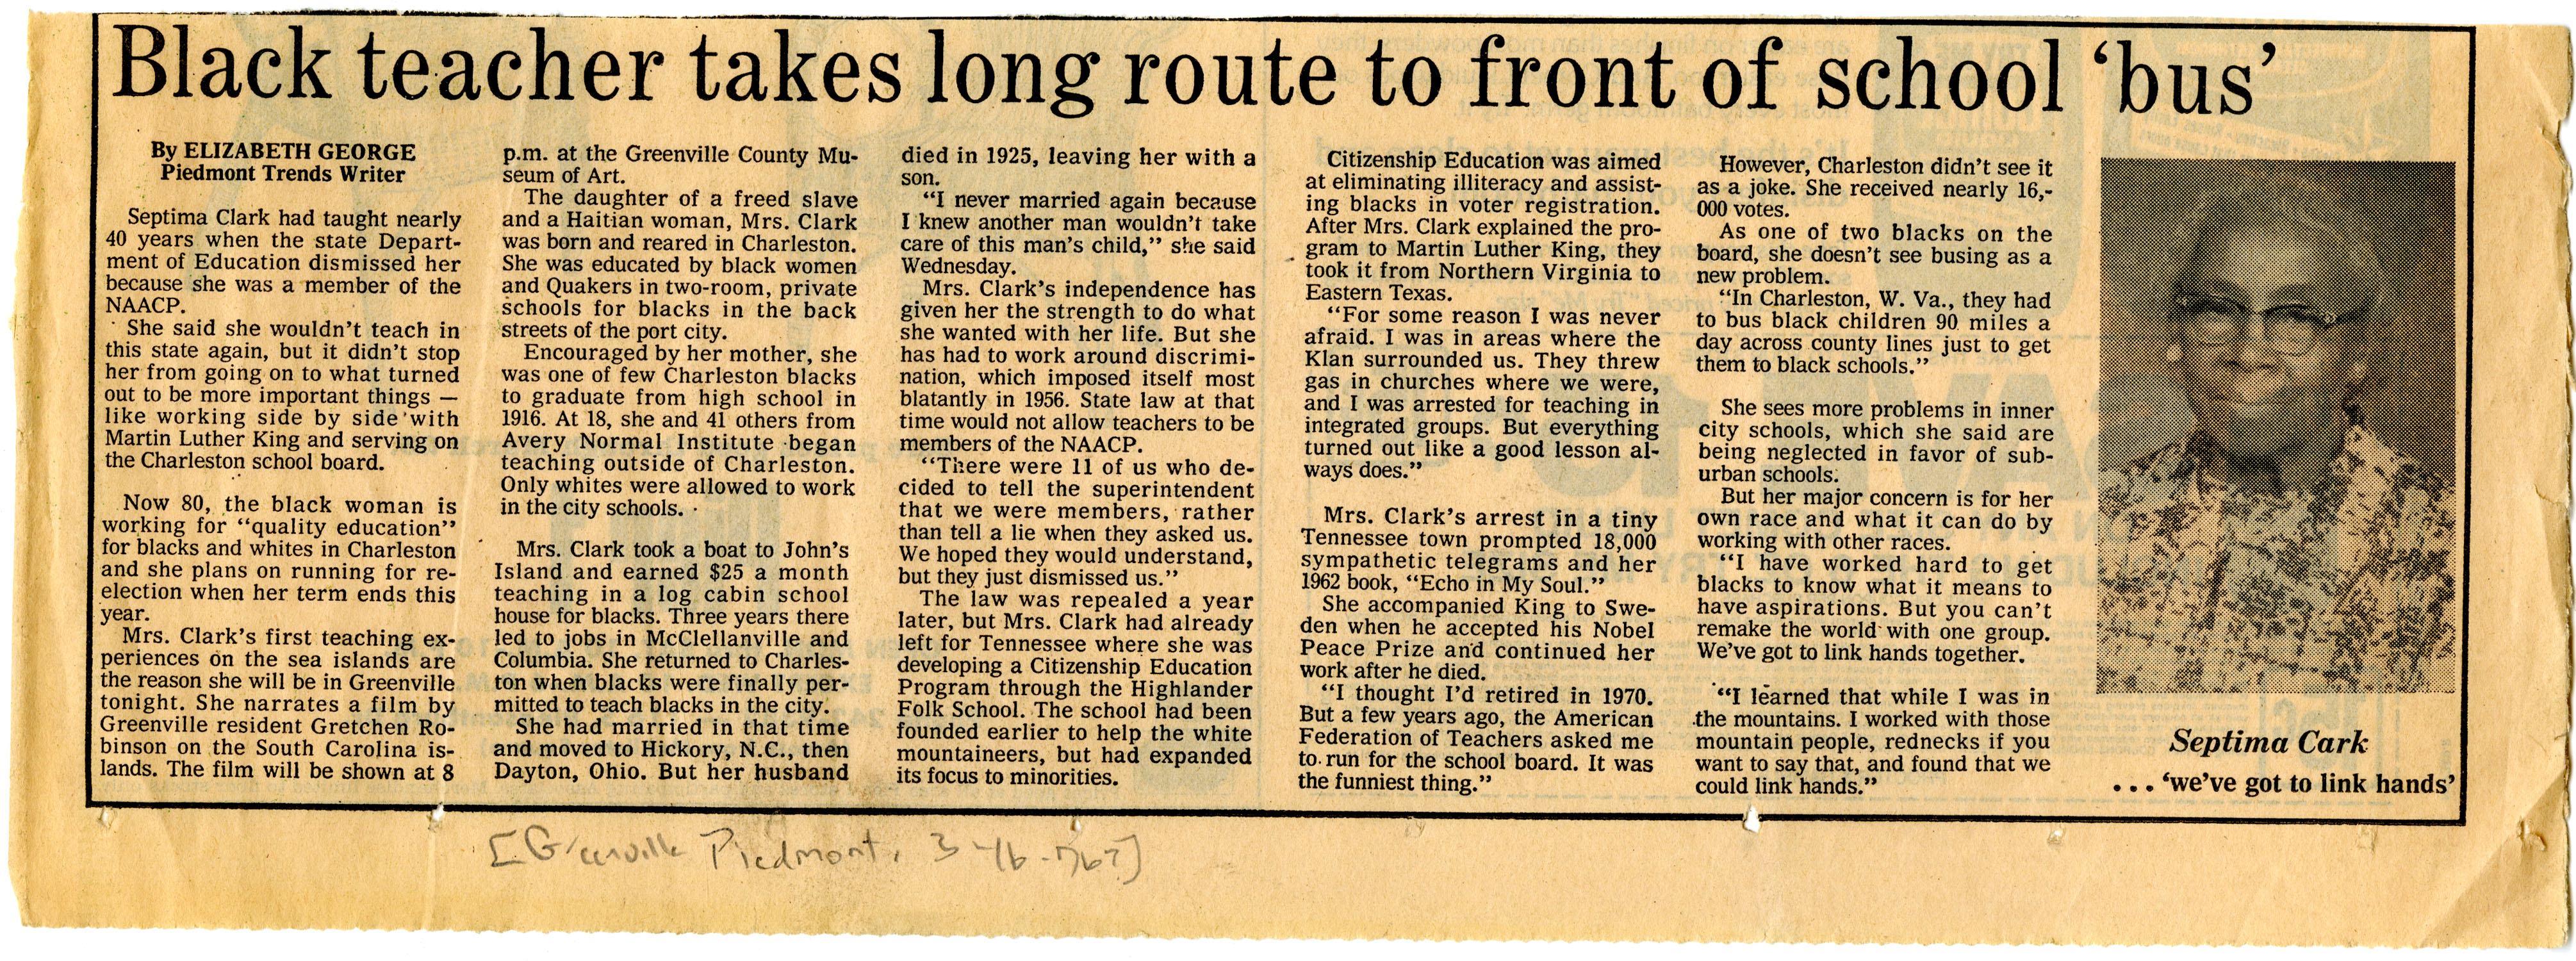 Newspaper Article, March 16, 1976